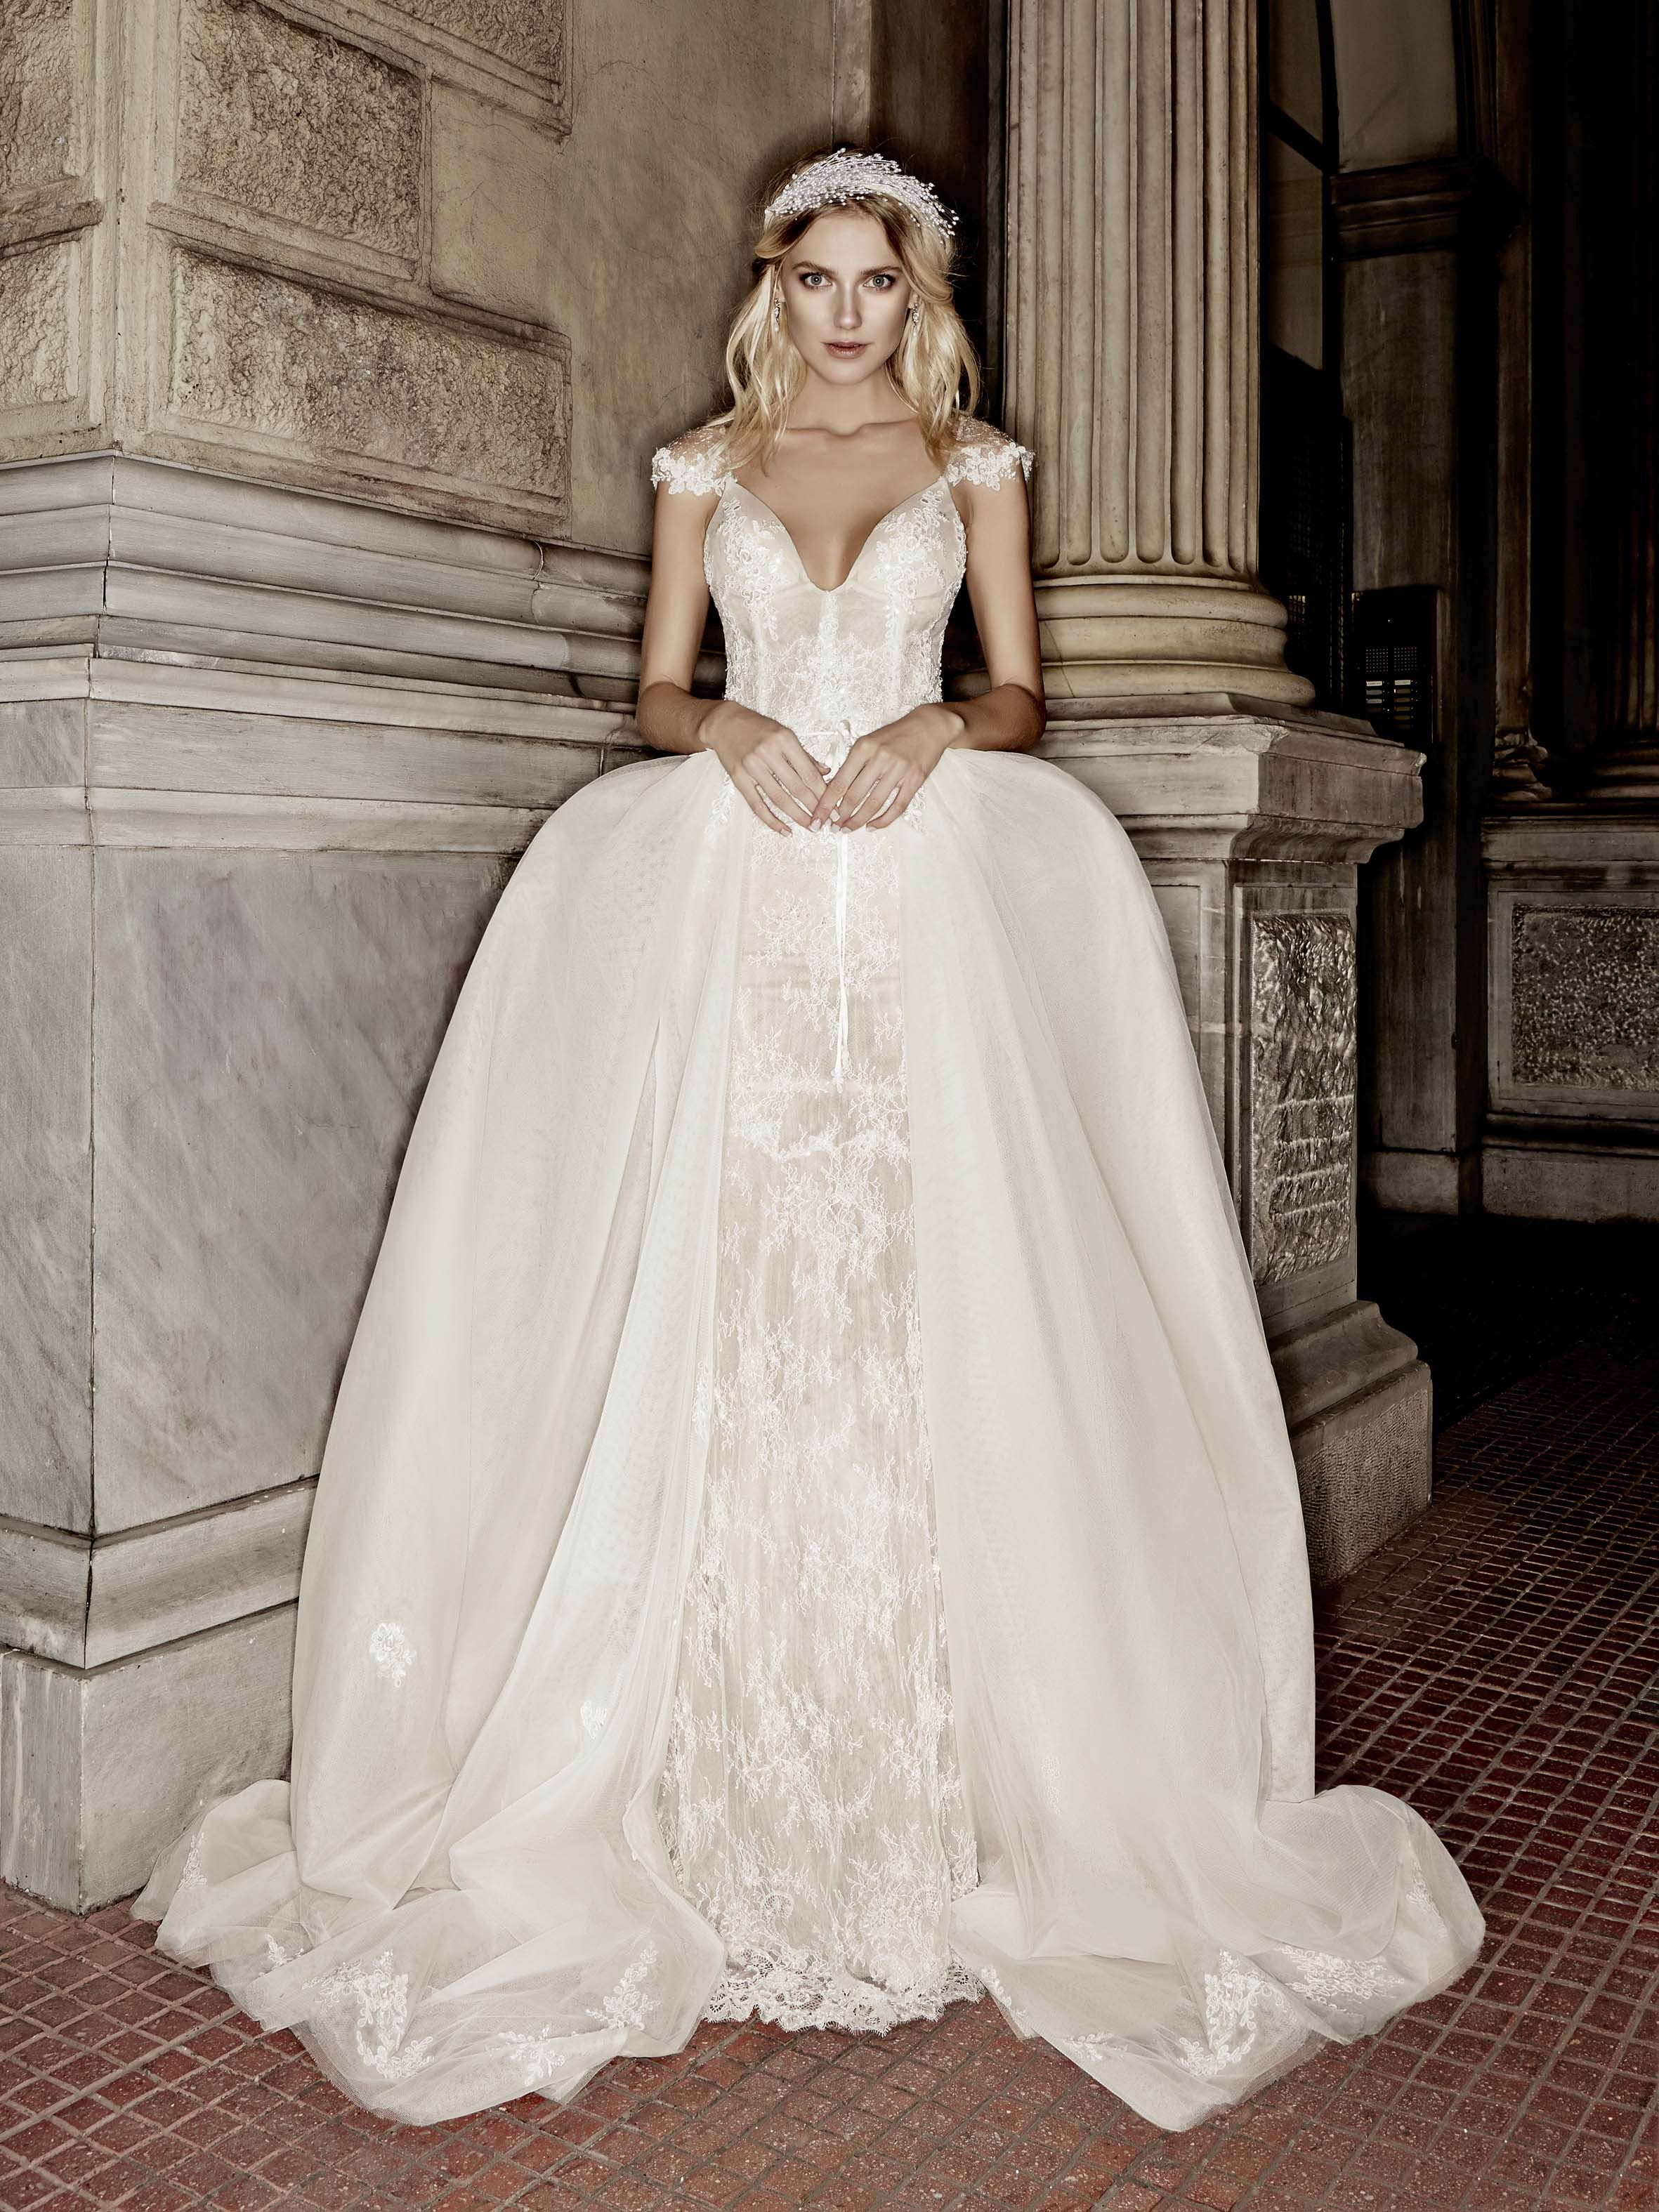 Victoria KyriaKides Bridal Collection. Model in the Elisabeth Dress ...